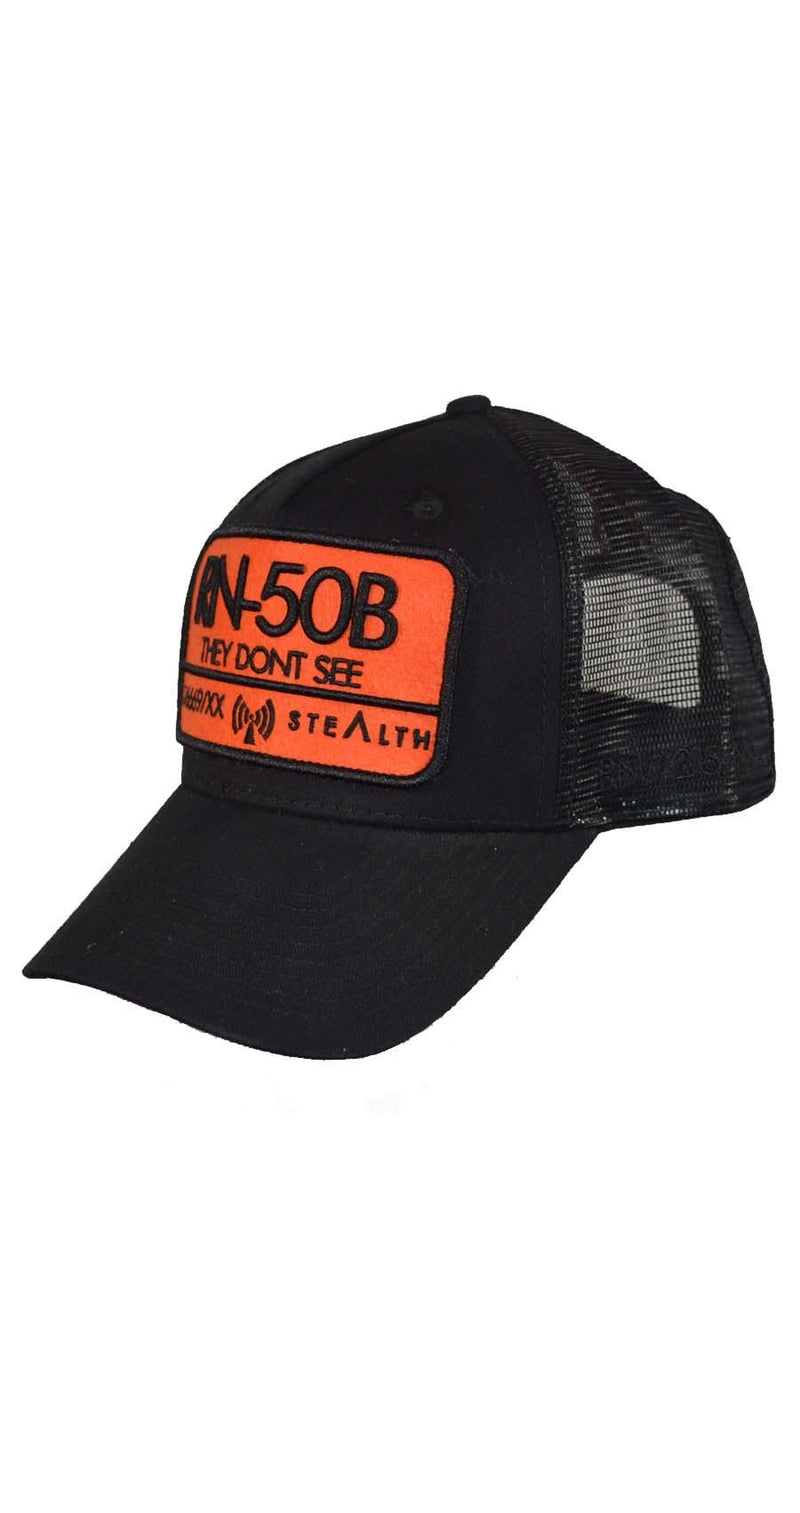 Stealth London Clothing Co One size fits all RN-50B Snapback